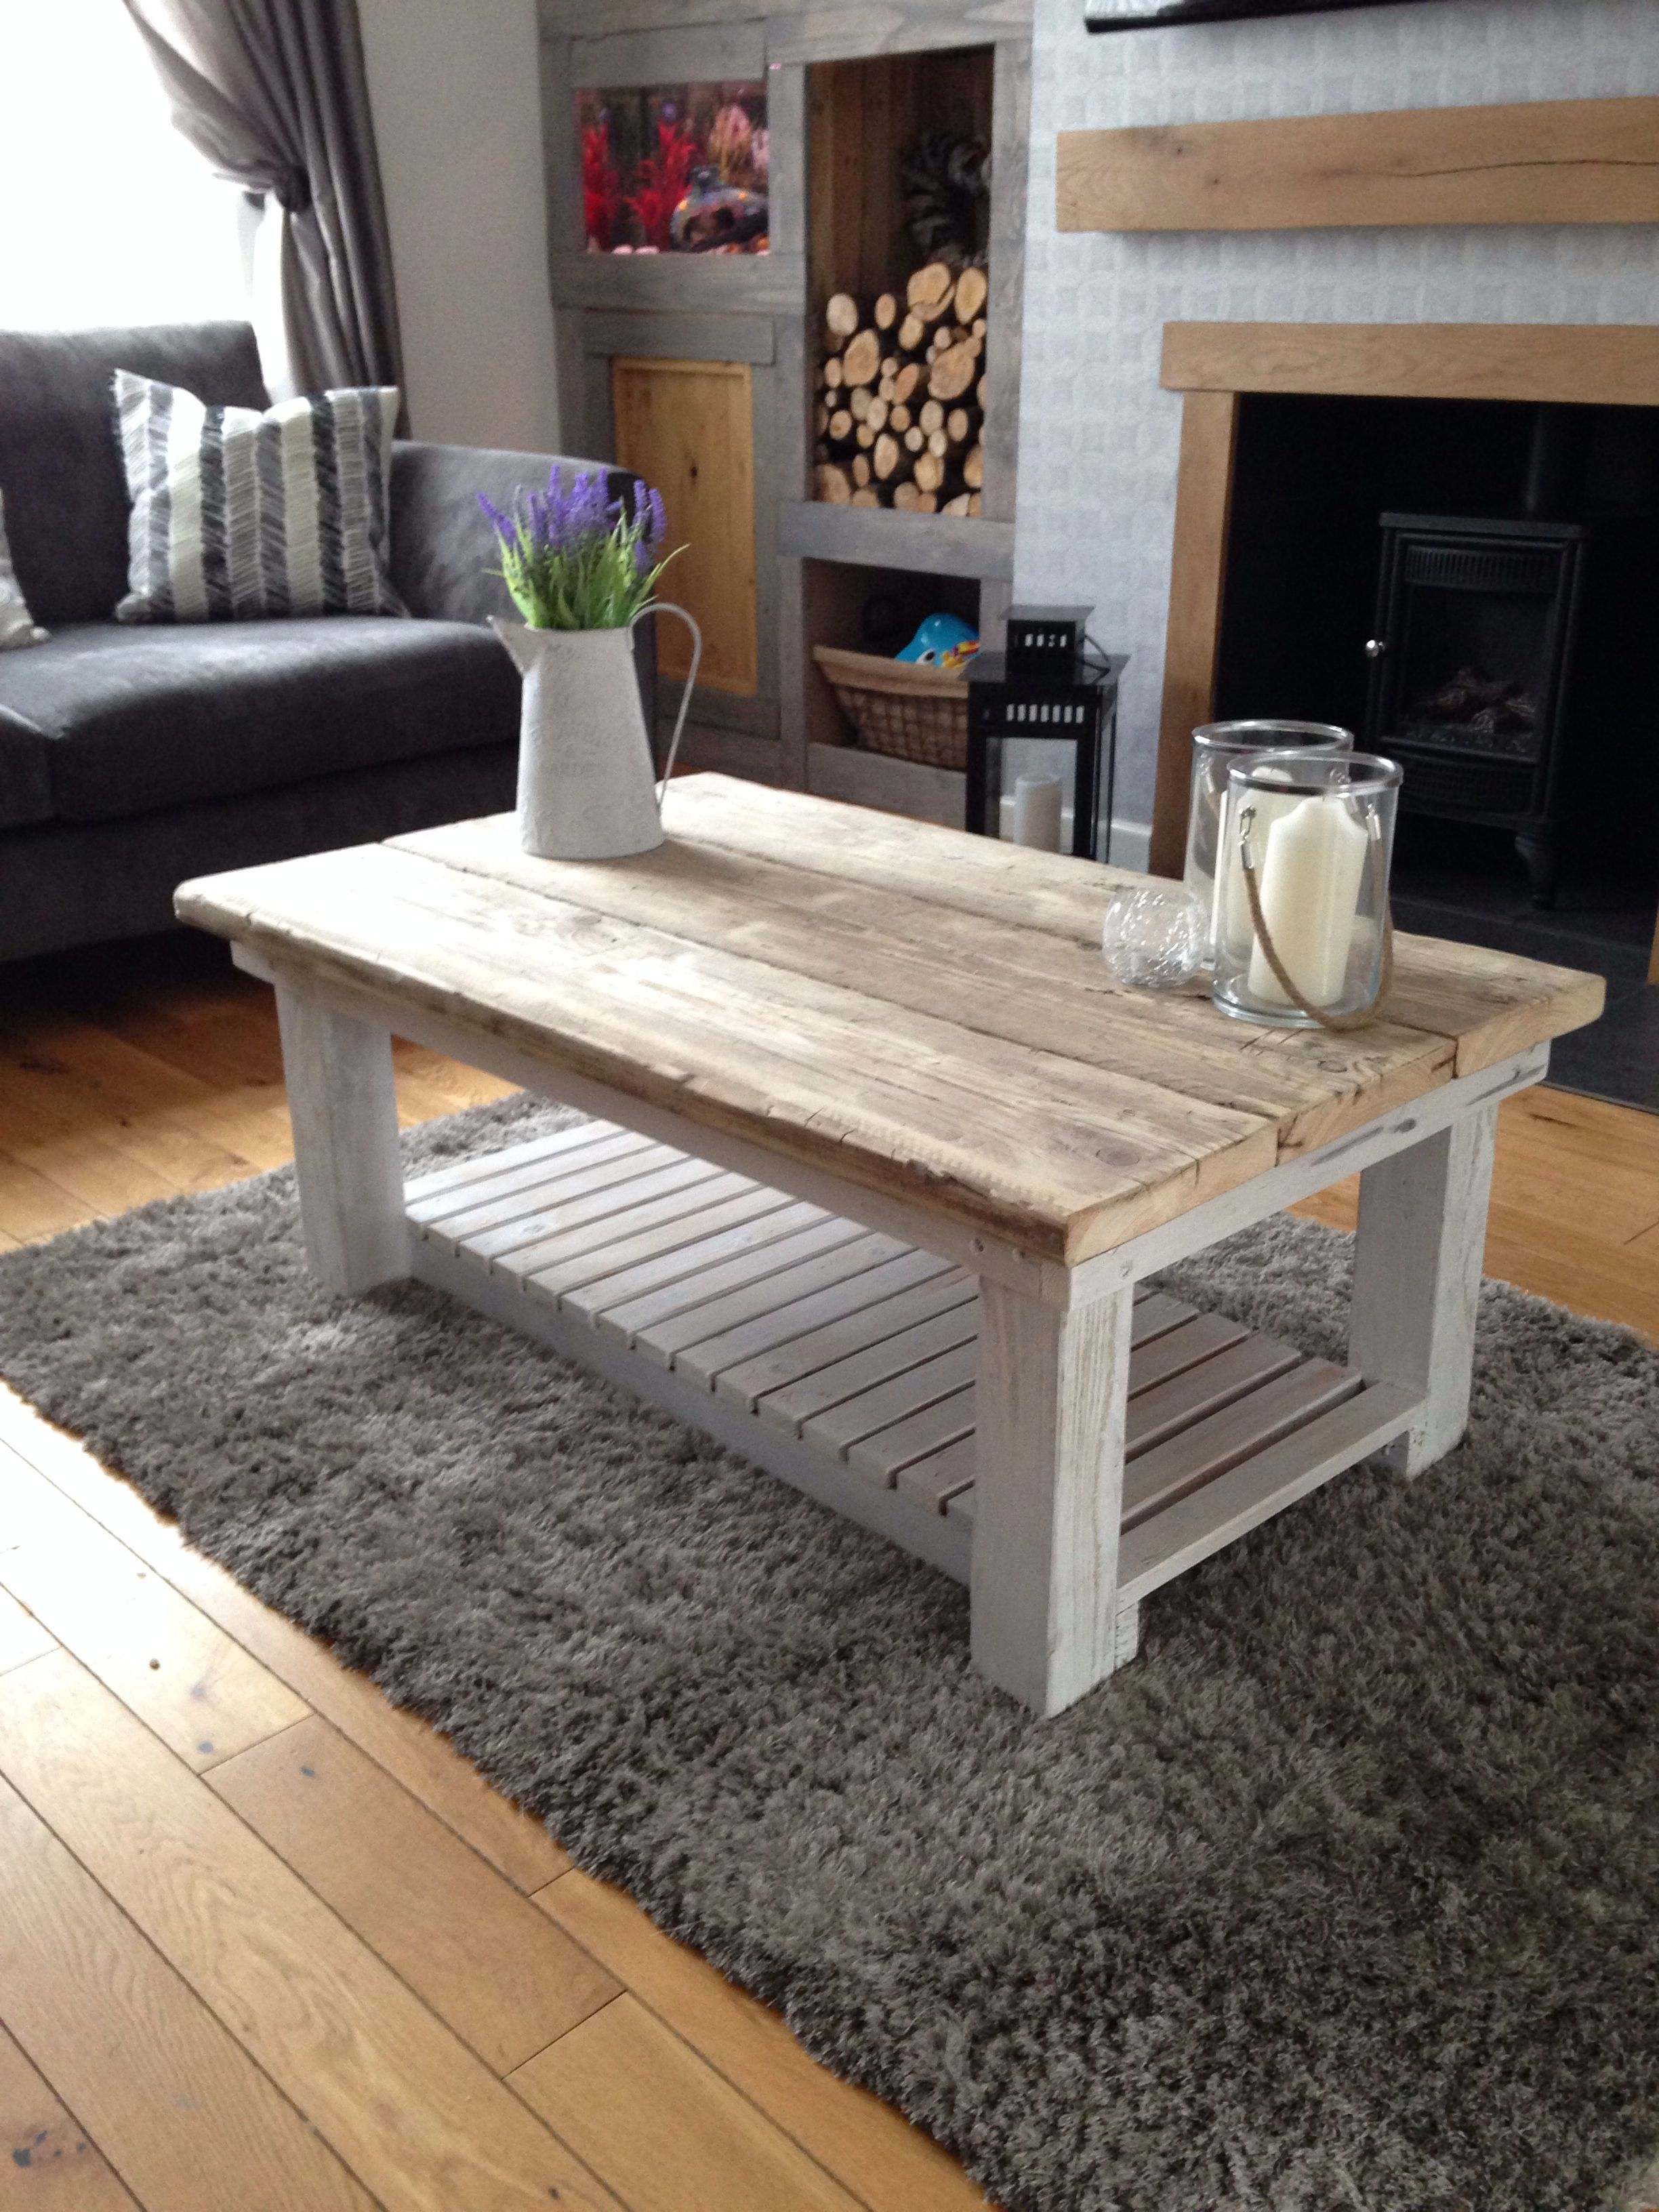 Reclaimed scaffold board coffee table perfect addition to any decor shabby chic industrial country or modern for sale mccarthy bespoke furnishings